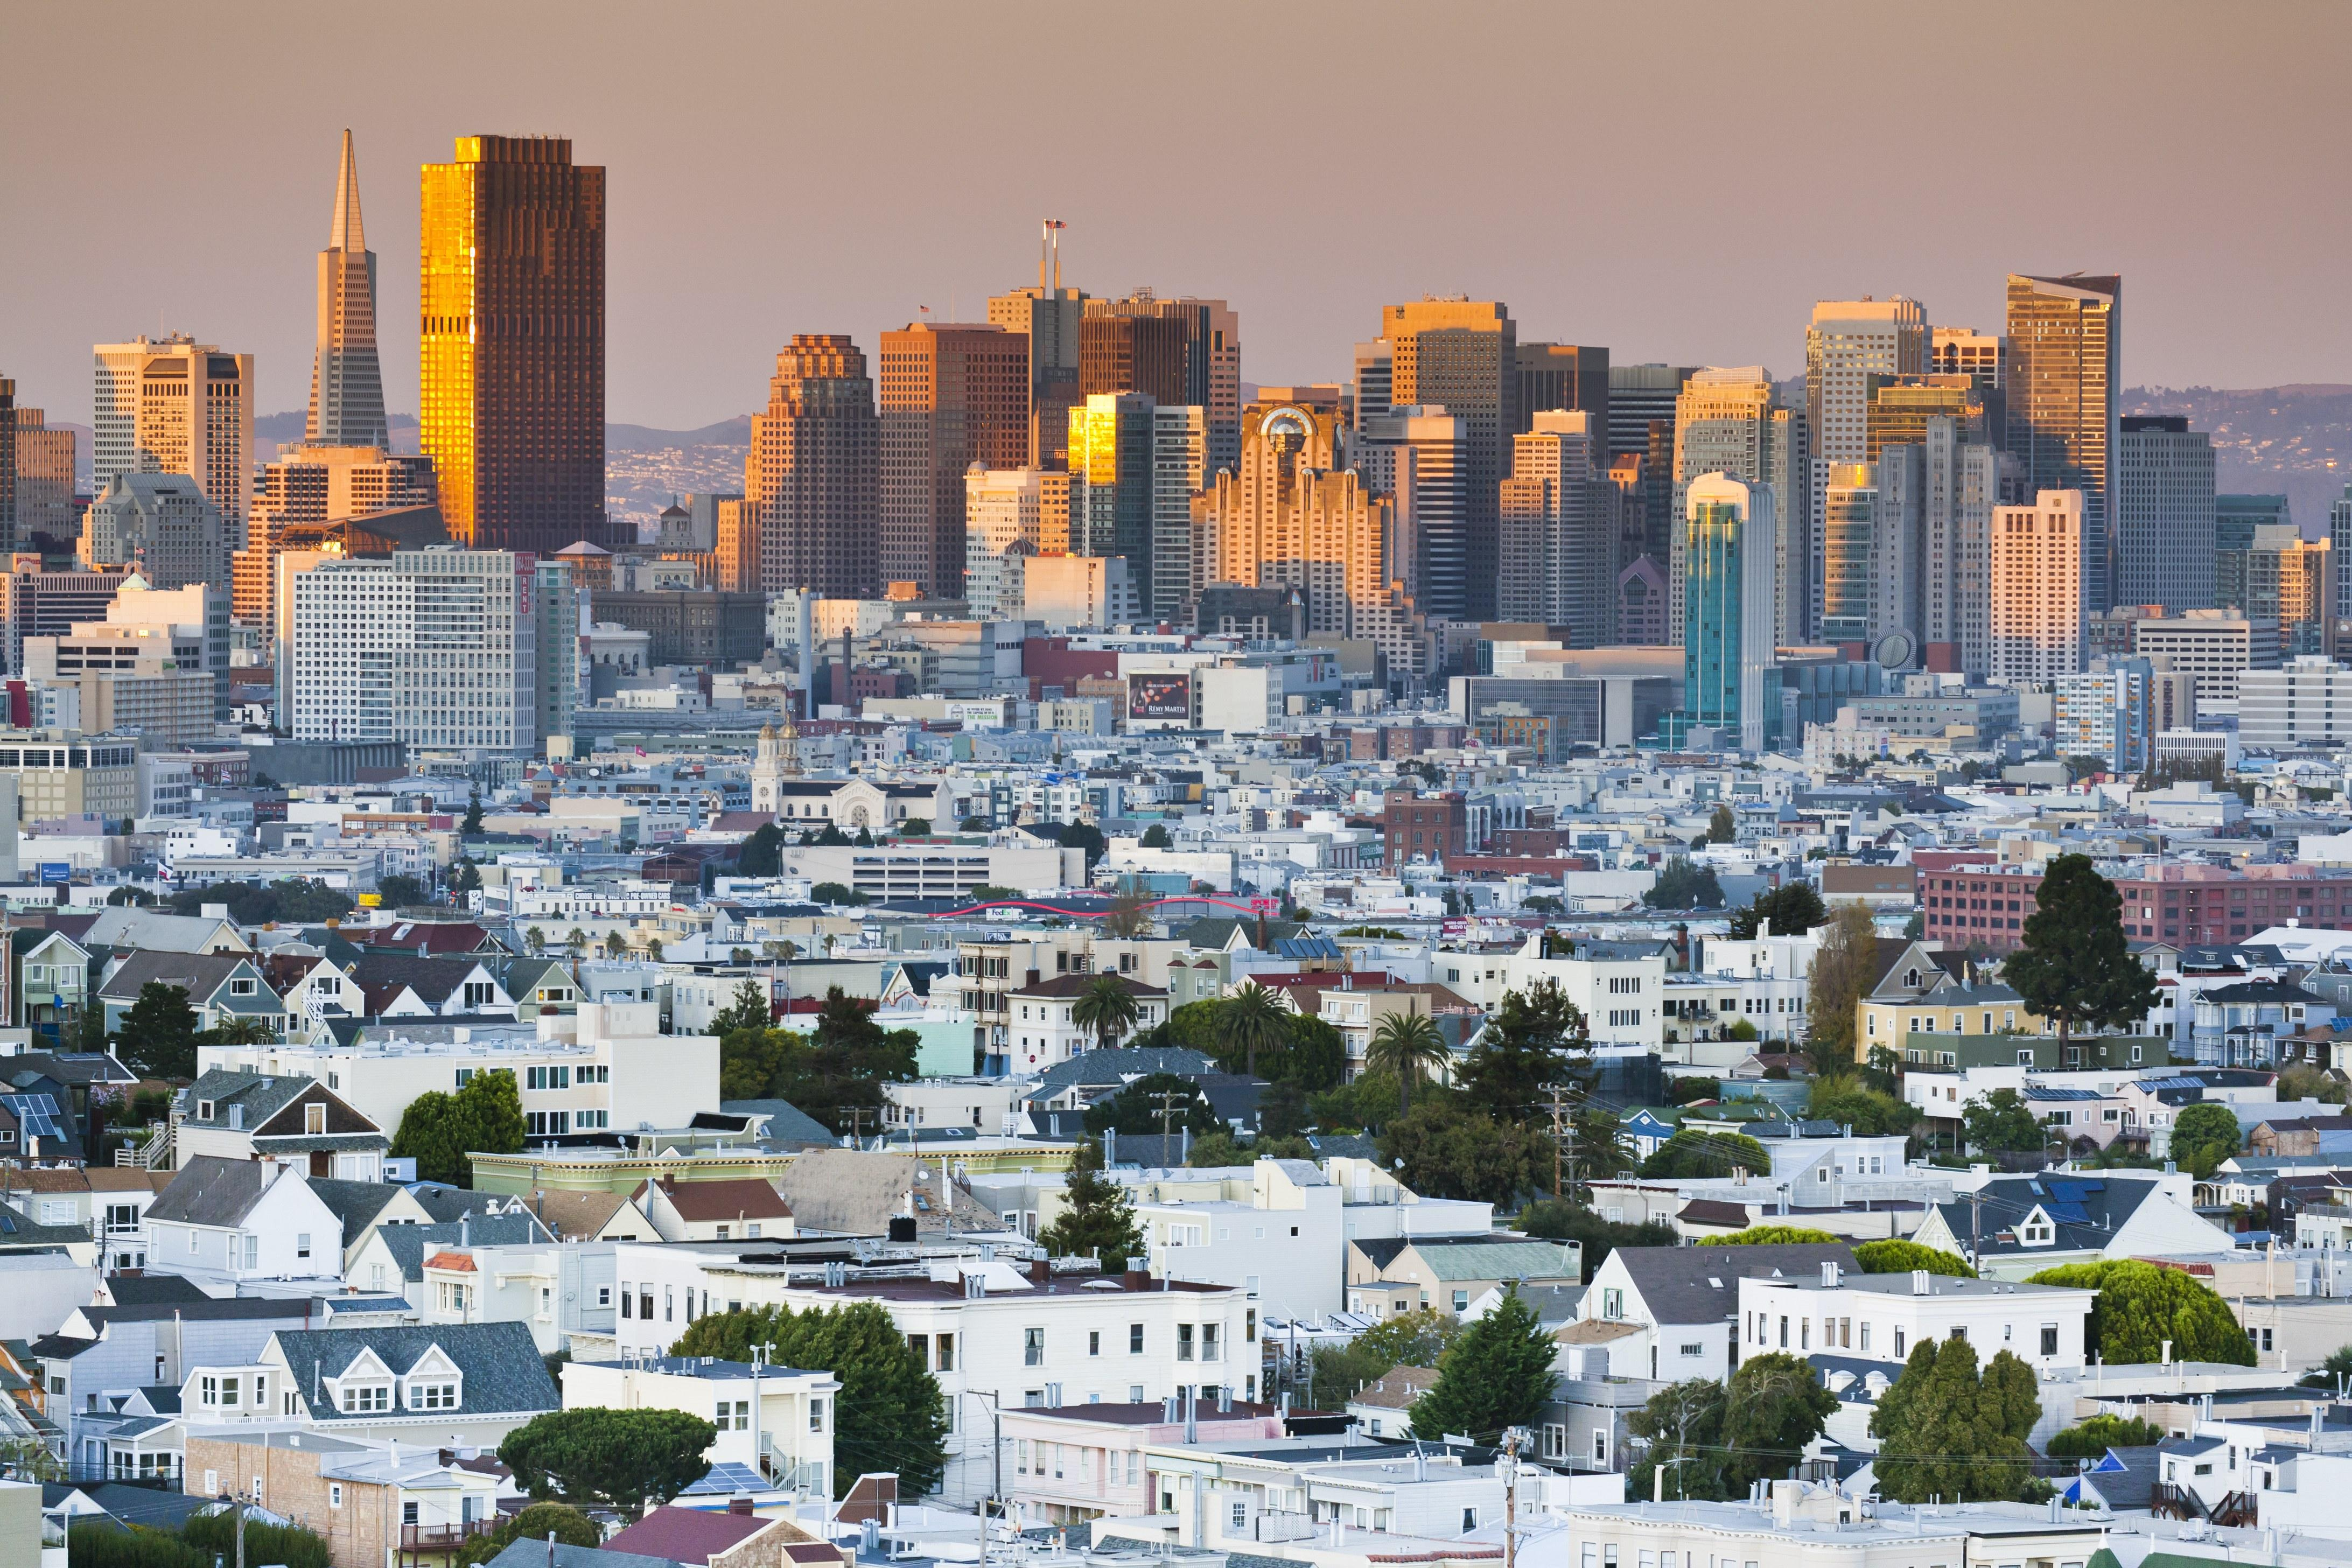 New Survey Shows Over 40% of Bay Area Residents Want to Move